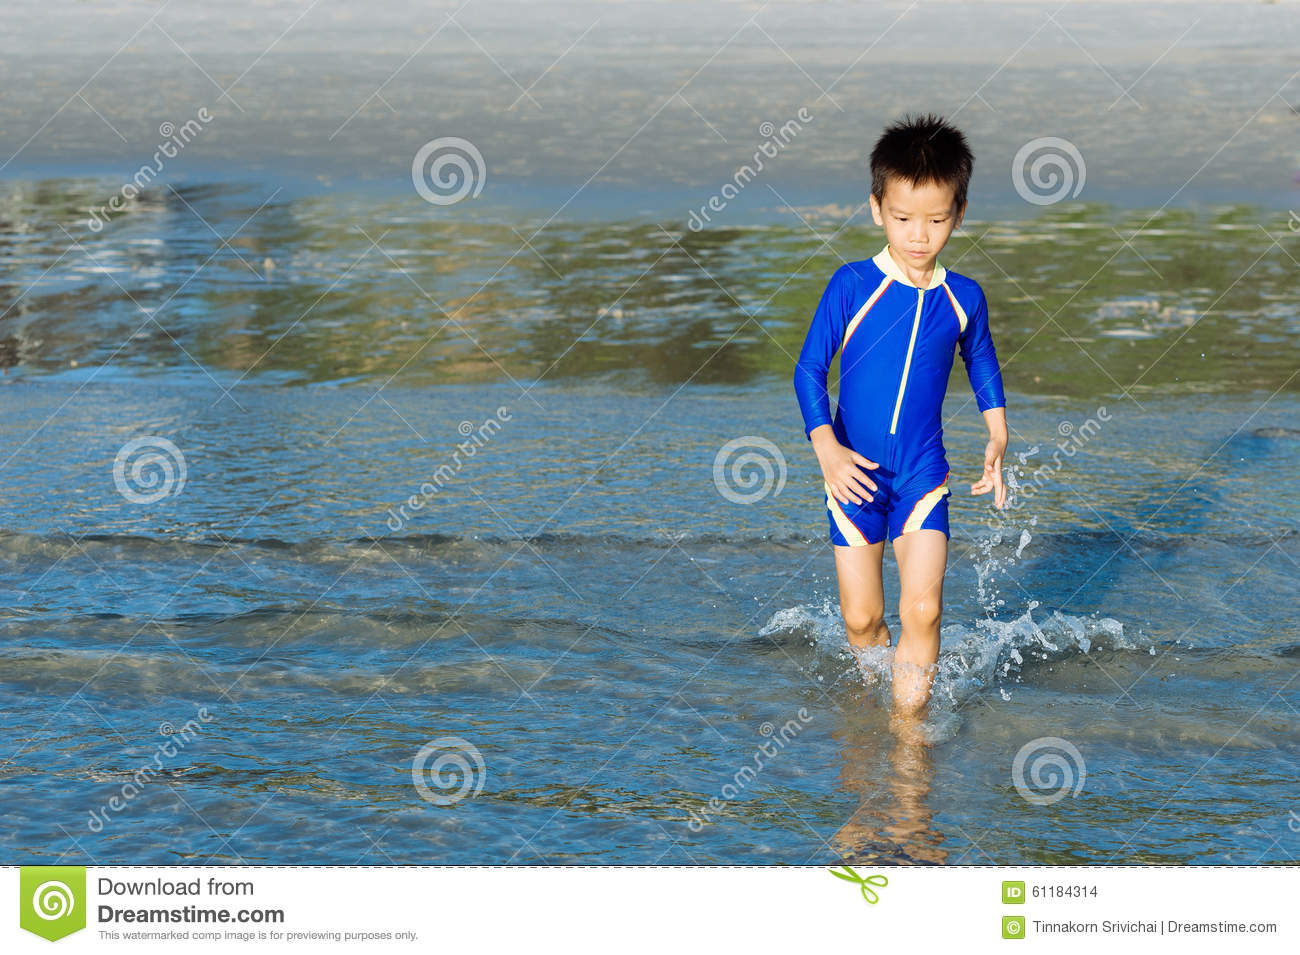 d2bba7ad04 Boy run to the sea stock photo. Image of young, play - 61184314